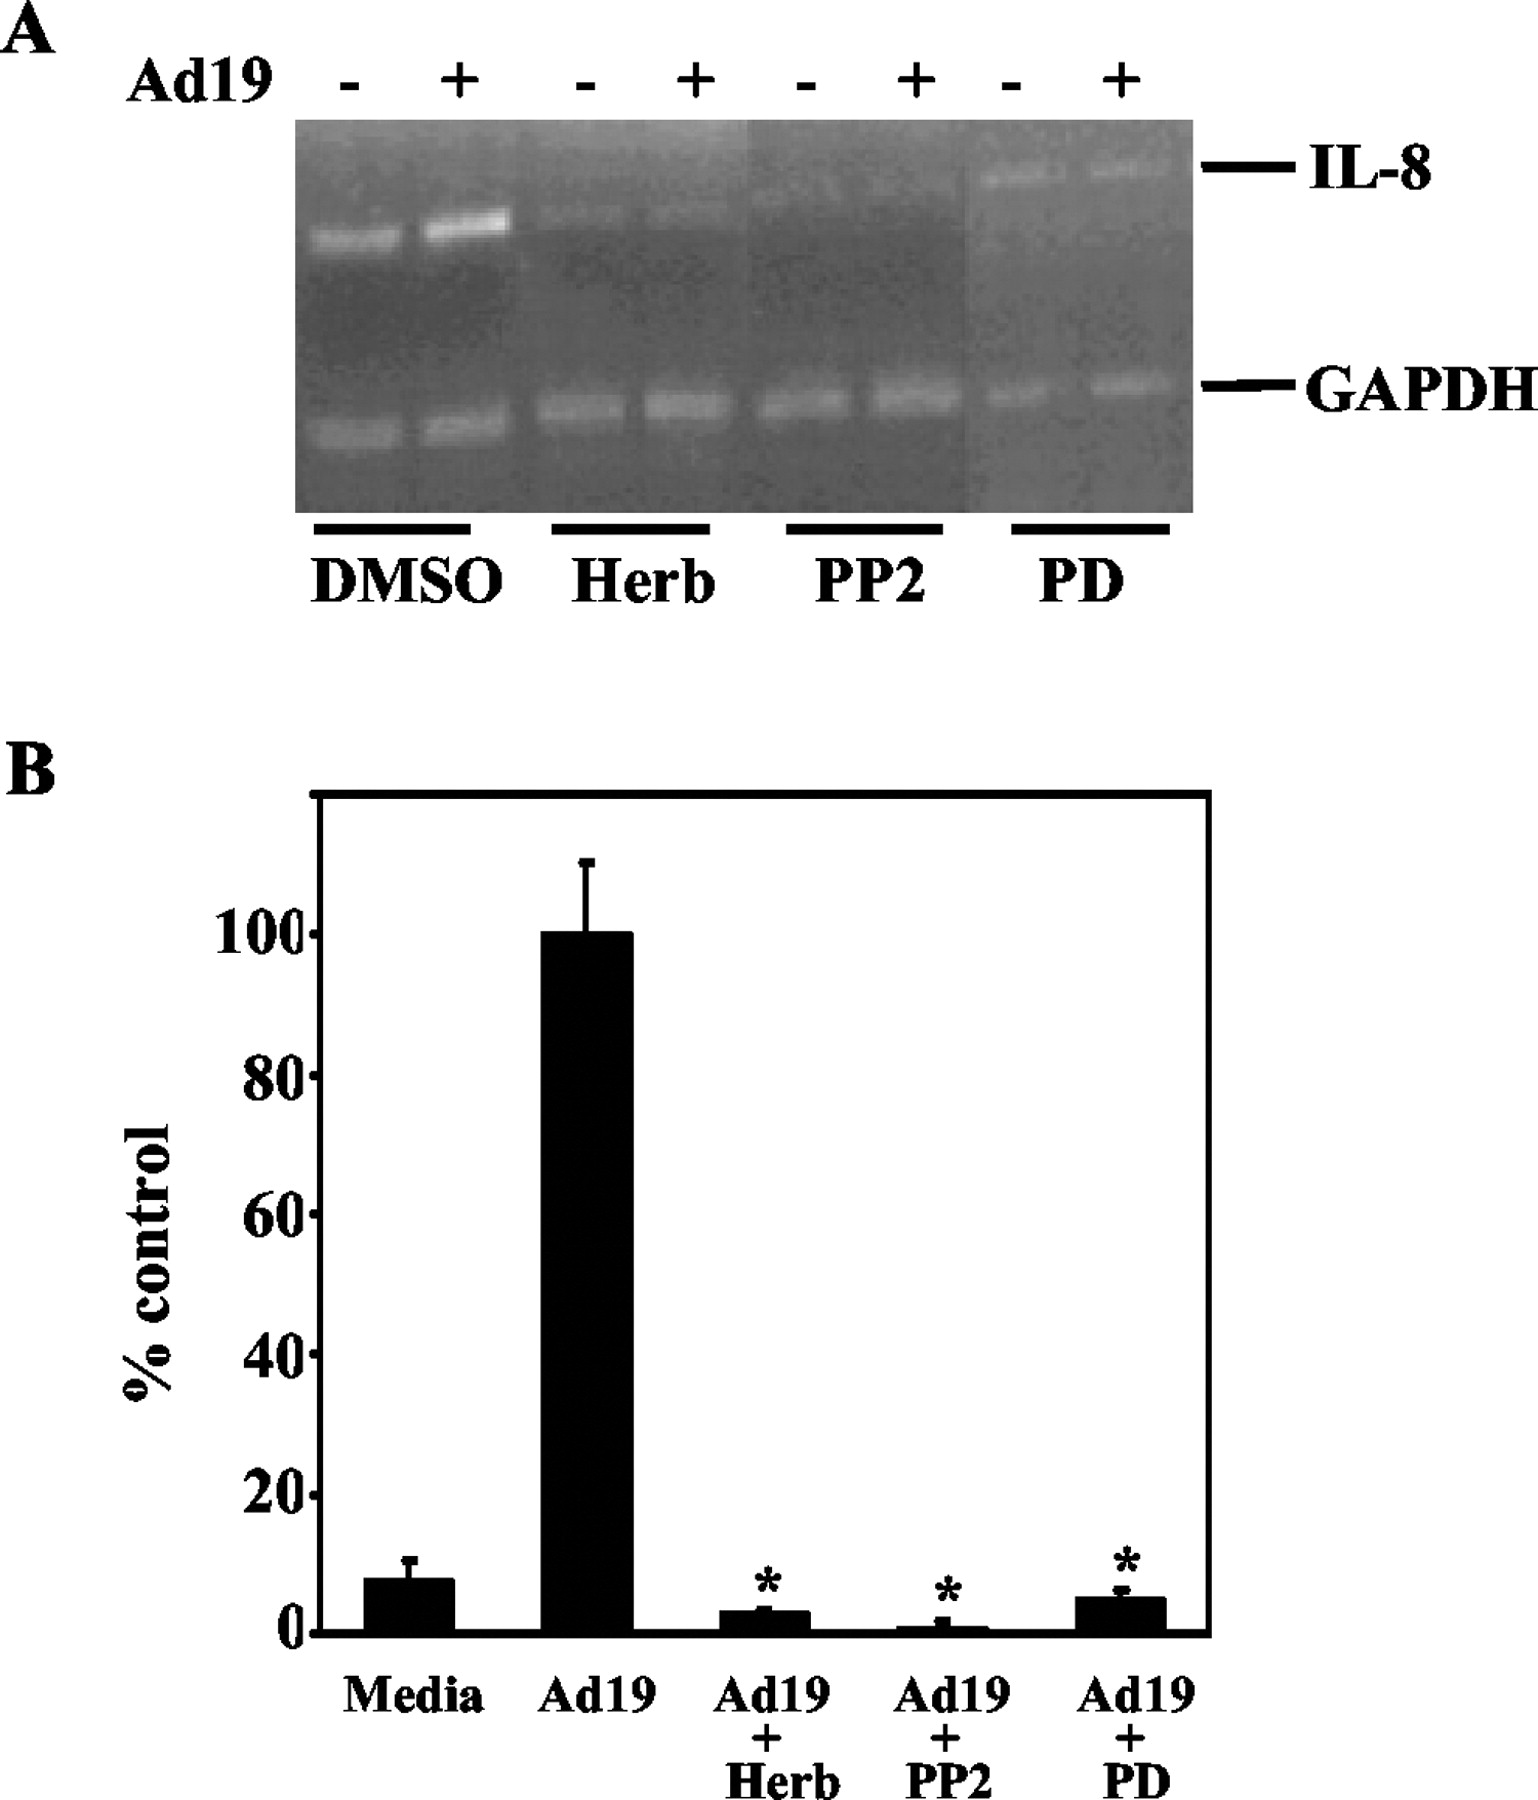 corneal il 8 expression following adenovirus infection is mediated